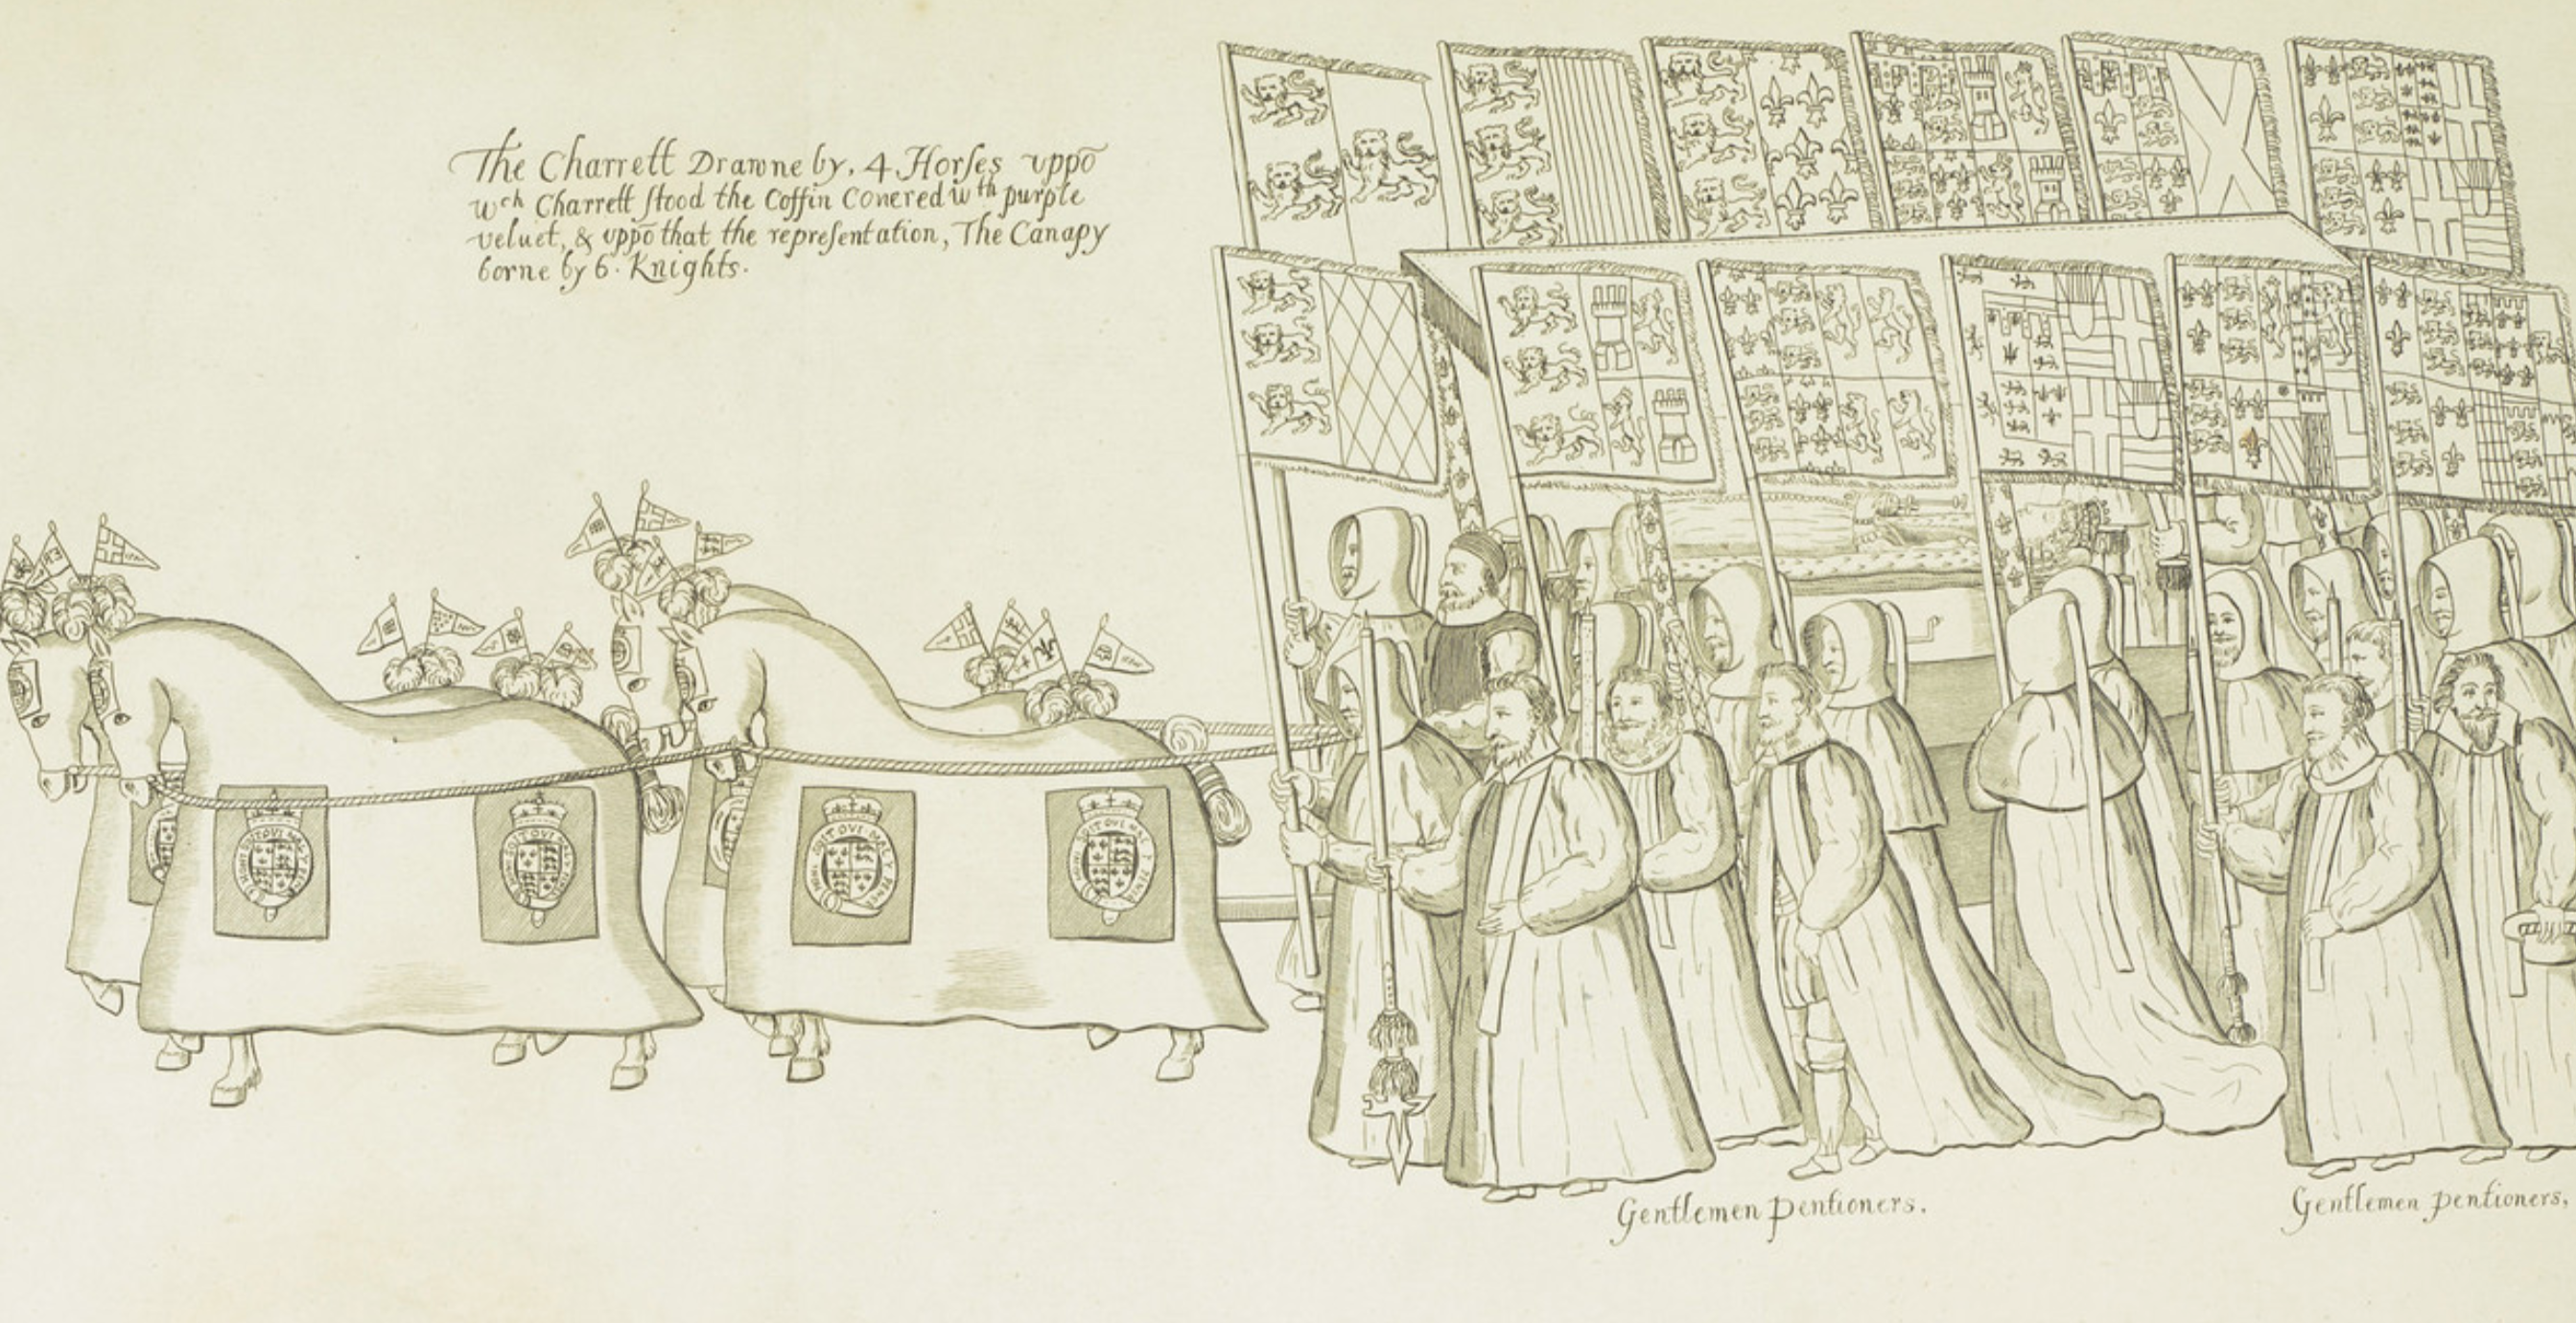 The death, funeral and burial of Elizabeth I